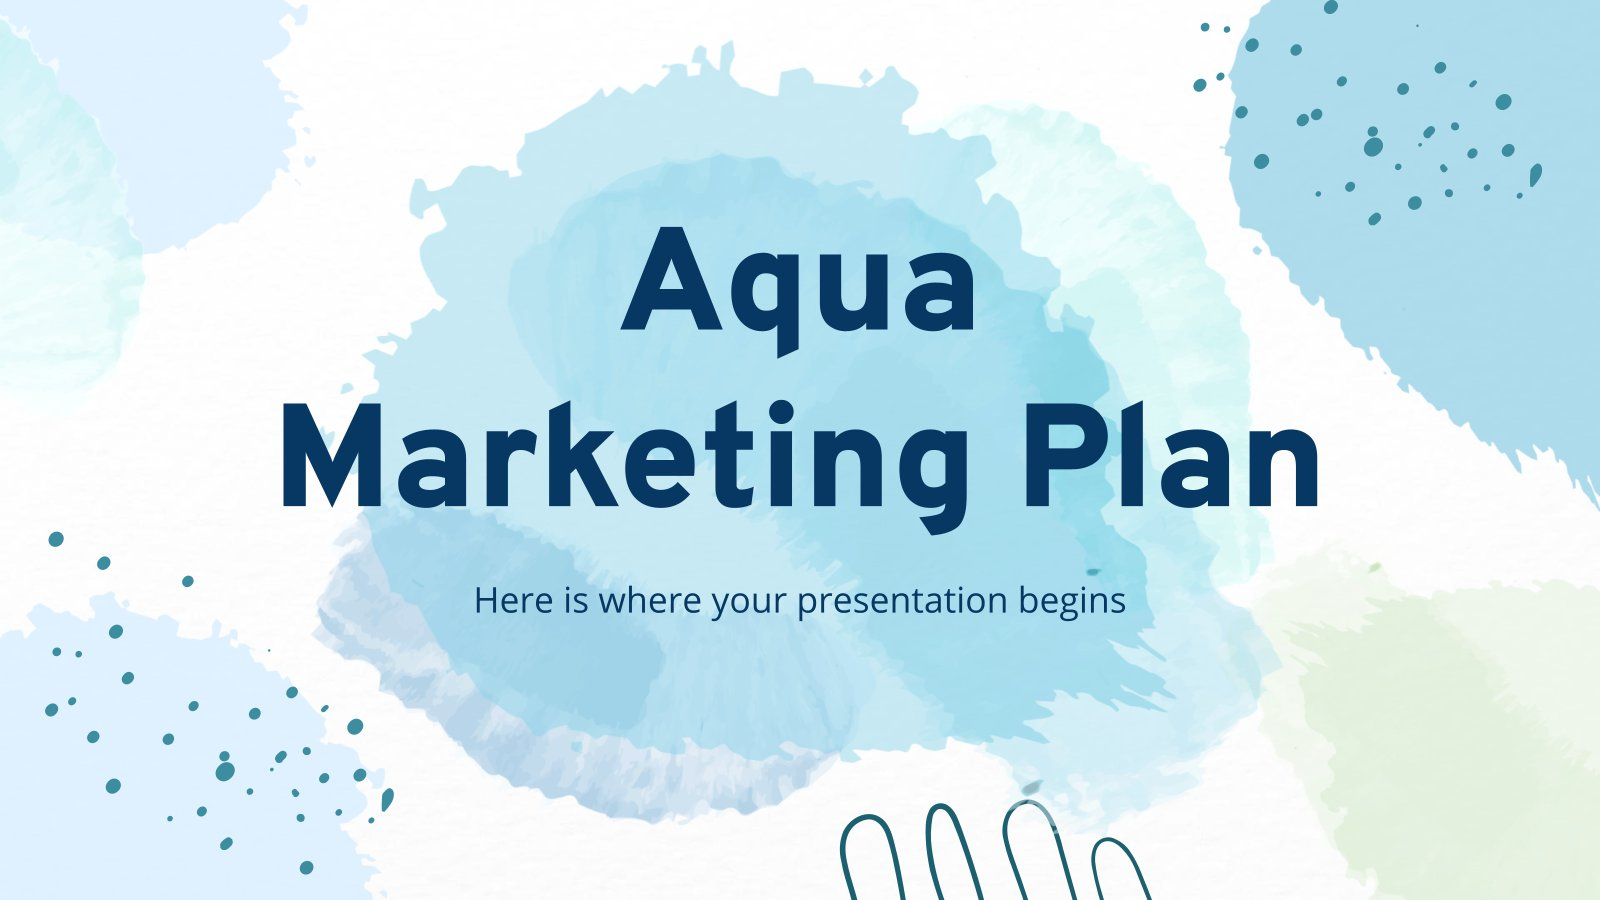 Aqua Marketing Plan presentation template